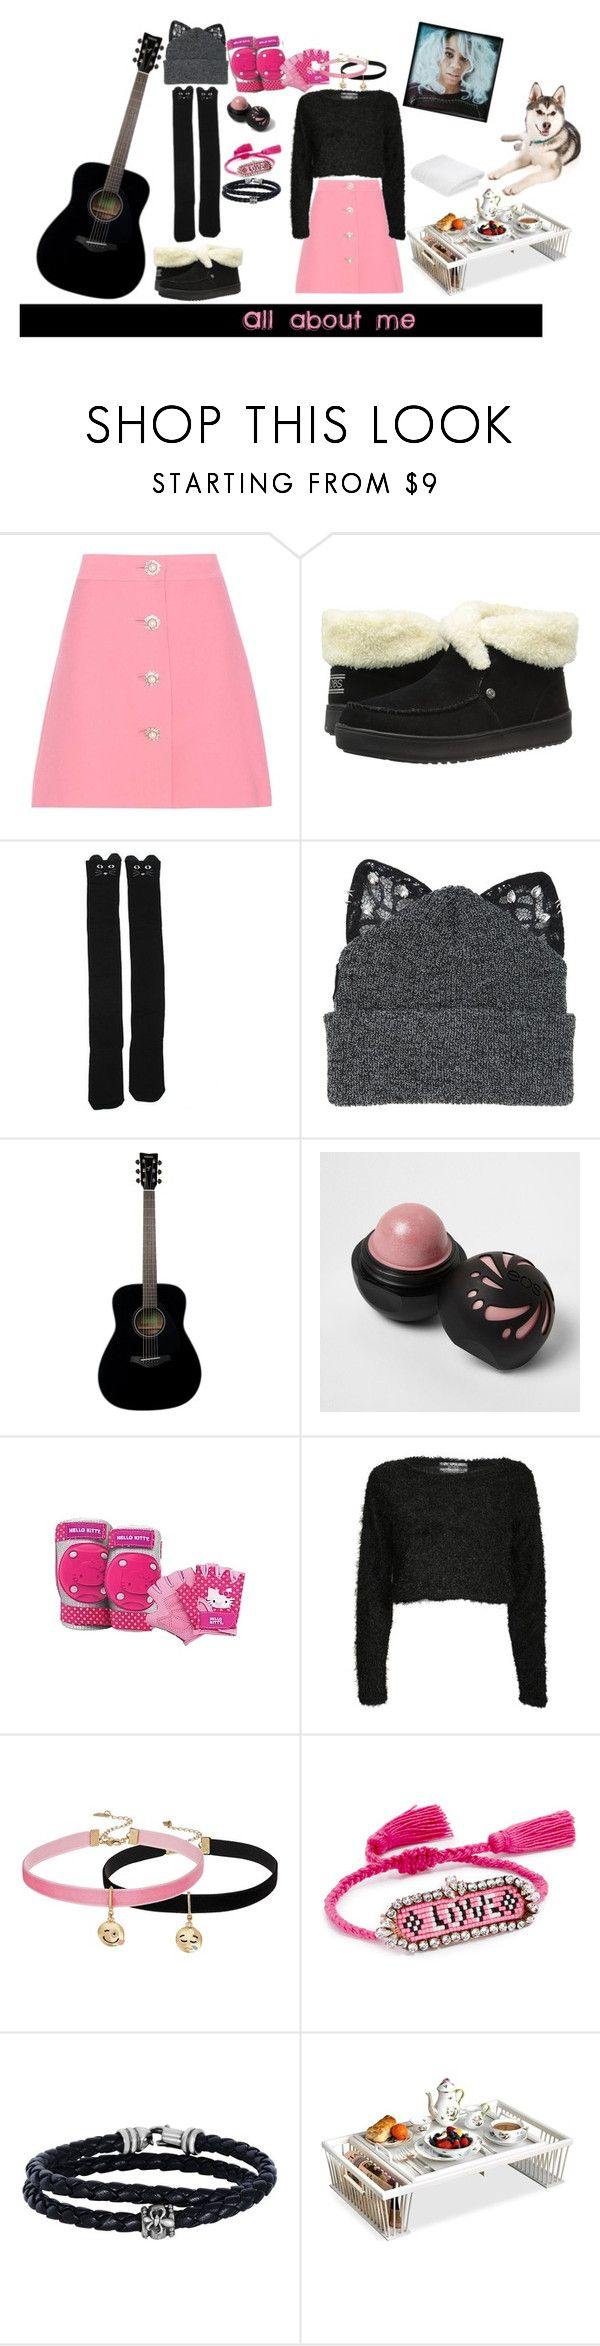 """All about me"" by firdawskone on Polyvore featuring Miu Miu, BOBS from Skechers, Silver Spoon Attire, Yamaha, River Island, Hello Kitty, Pilot, Steve Madden, Shourouk and Phillip Gavriel"